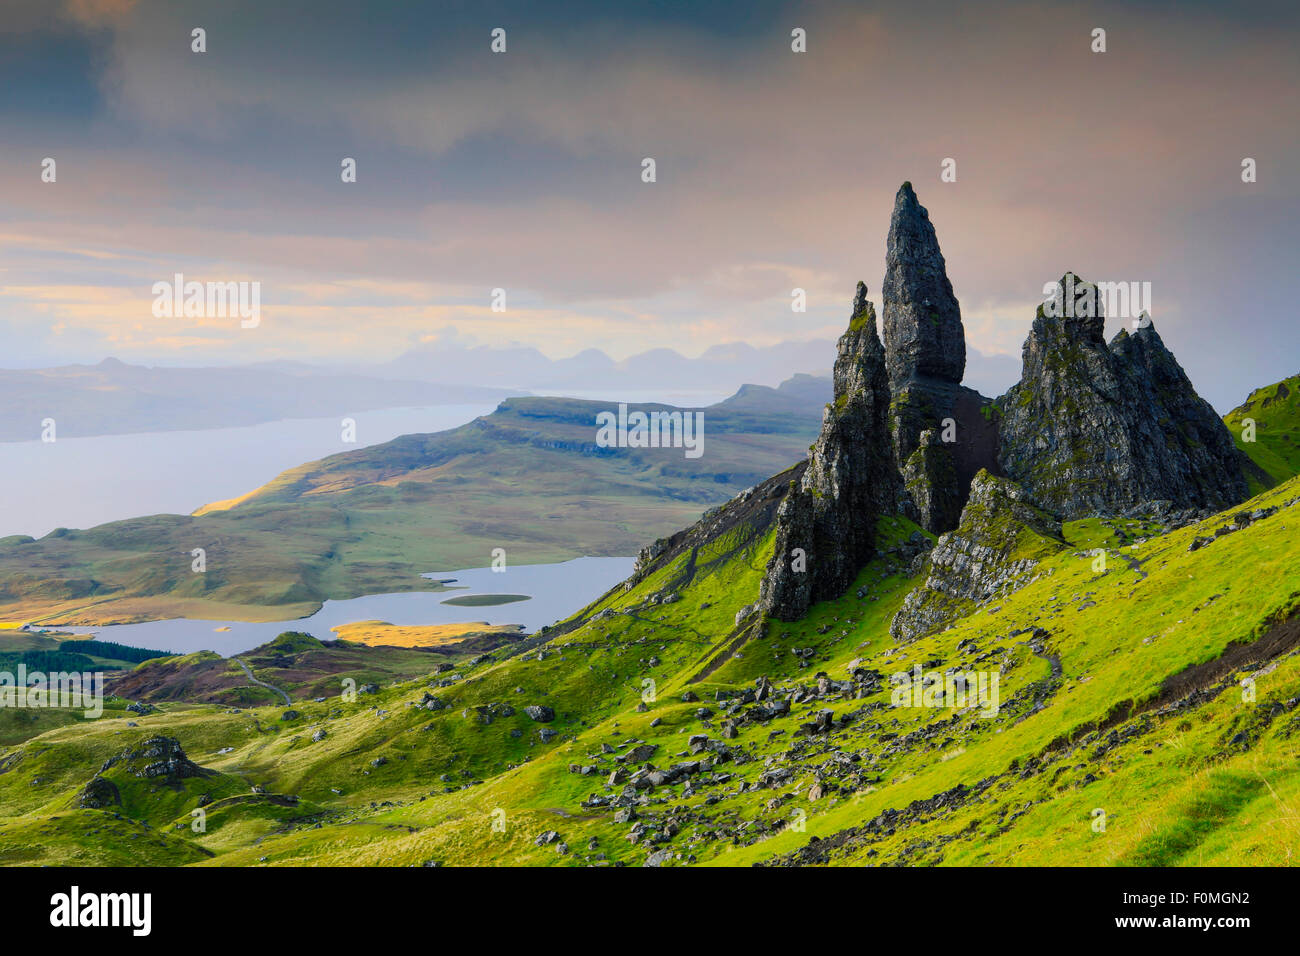 The Old Man of Storr rocks on the Isle of Skye in the Highlands of Scotland - Stock Image